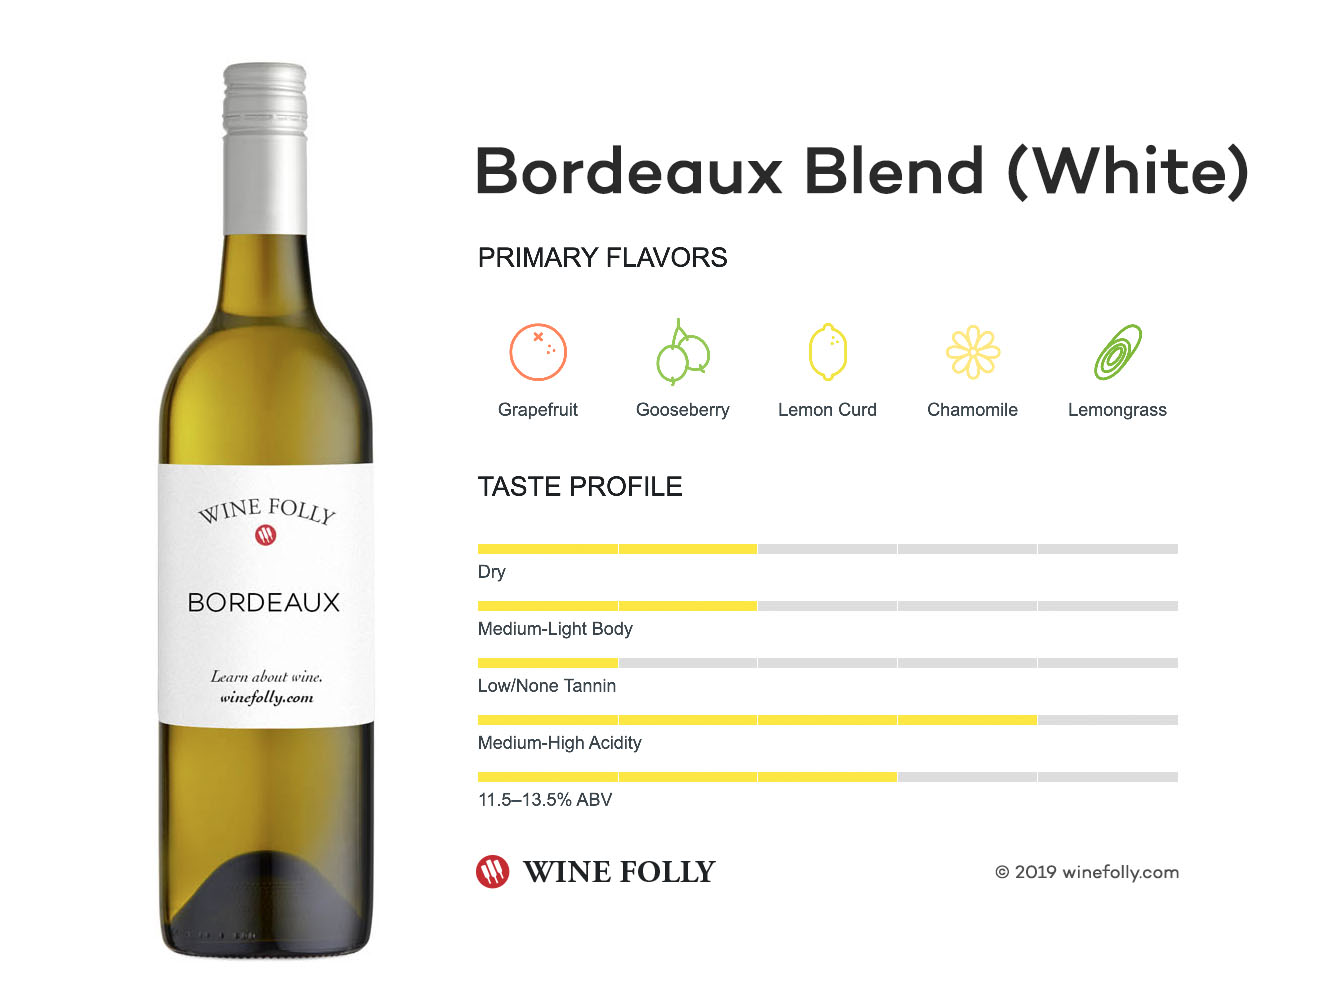 White Bordeaux / Bordeaux Blanc wine blend taste profile - Wine Folly